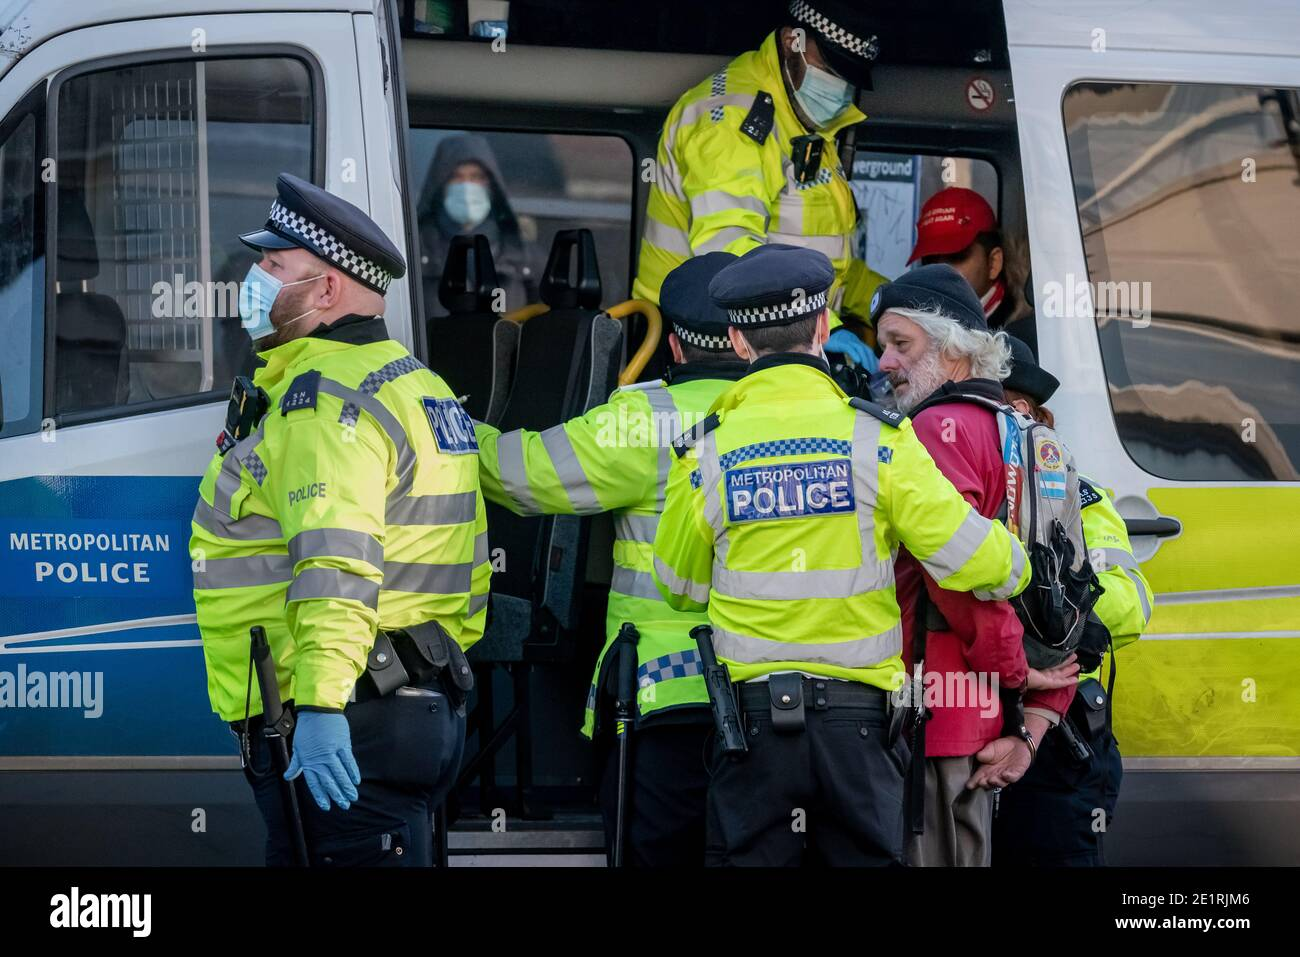 London, UK. 9th Jan, 2021. Coronavirus: Arrests are made during an attempted anti-lockdown gathering in Clapham Common against the current government lock-down restrictions including public social-distancing and large-scale gatherings. The conspiratorial supporters reject vaccines and claim the COVID-19 pandemic is a hoax. Credit: Guy Corbishley/Alamy Live News Stock Photo